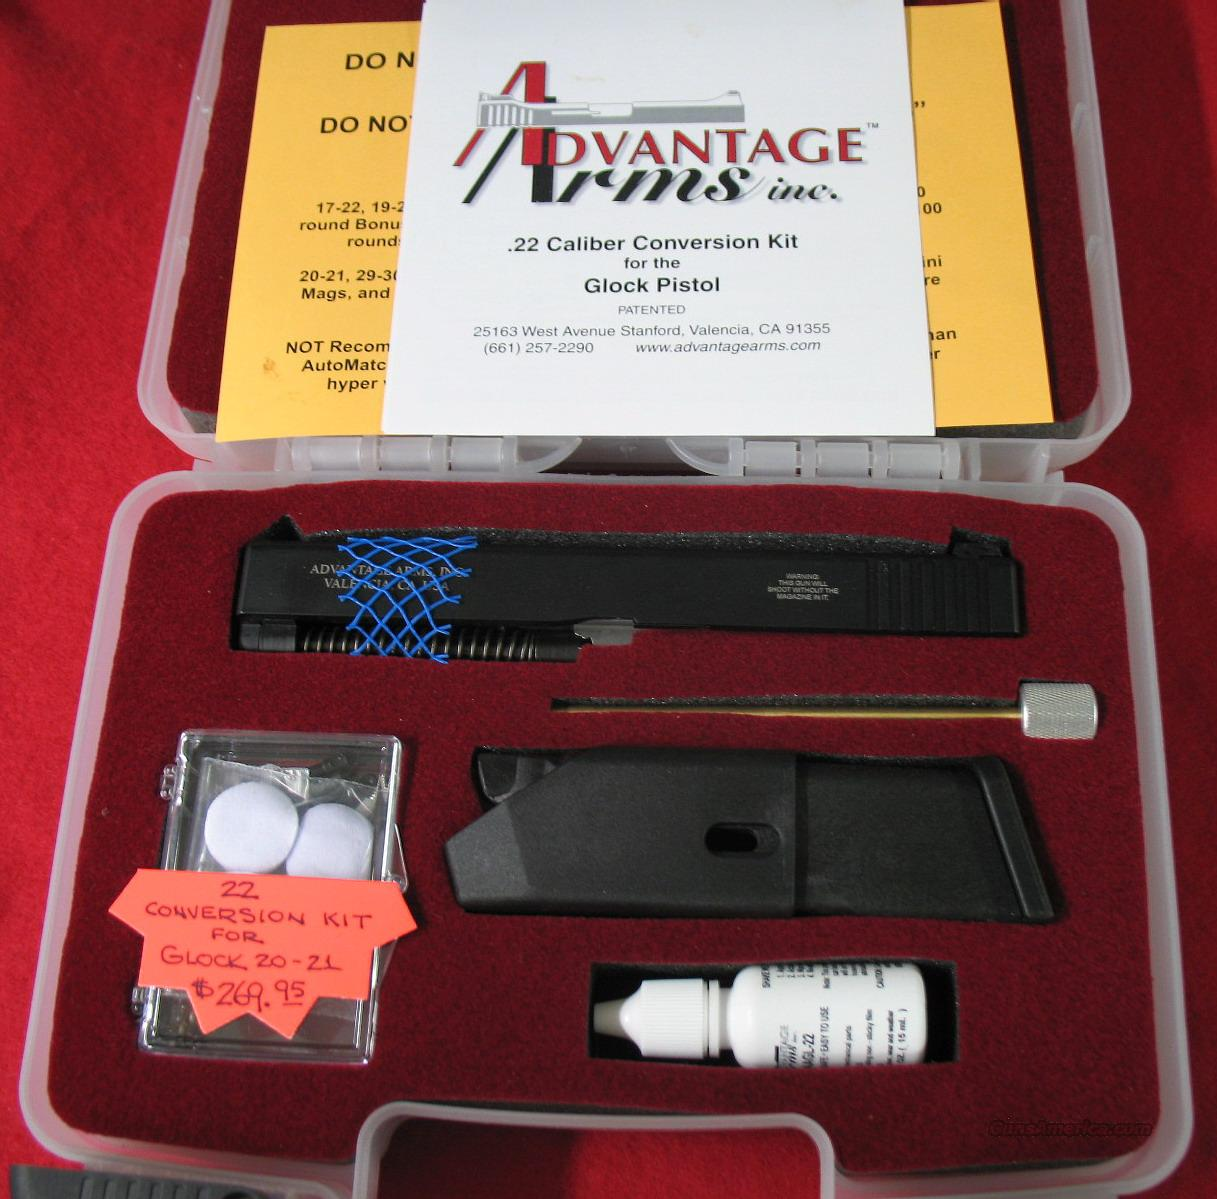 New Advantage arms Gen 4 Glock Md 20-21  22cal conversion kits  Non-Guns > Magazines & Clips > Pistol Magazines > Glock